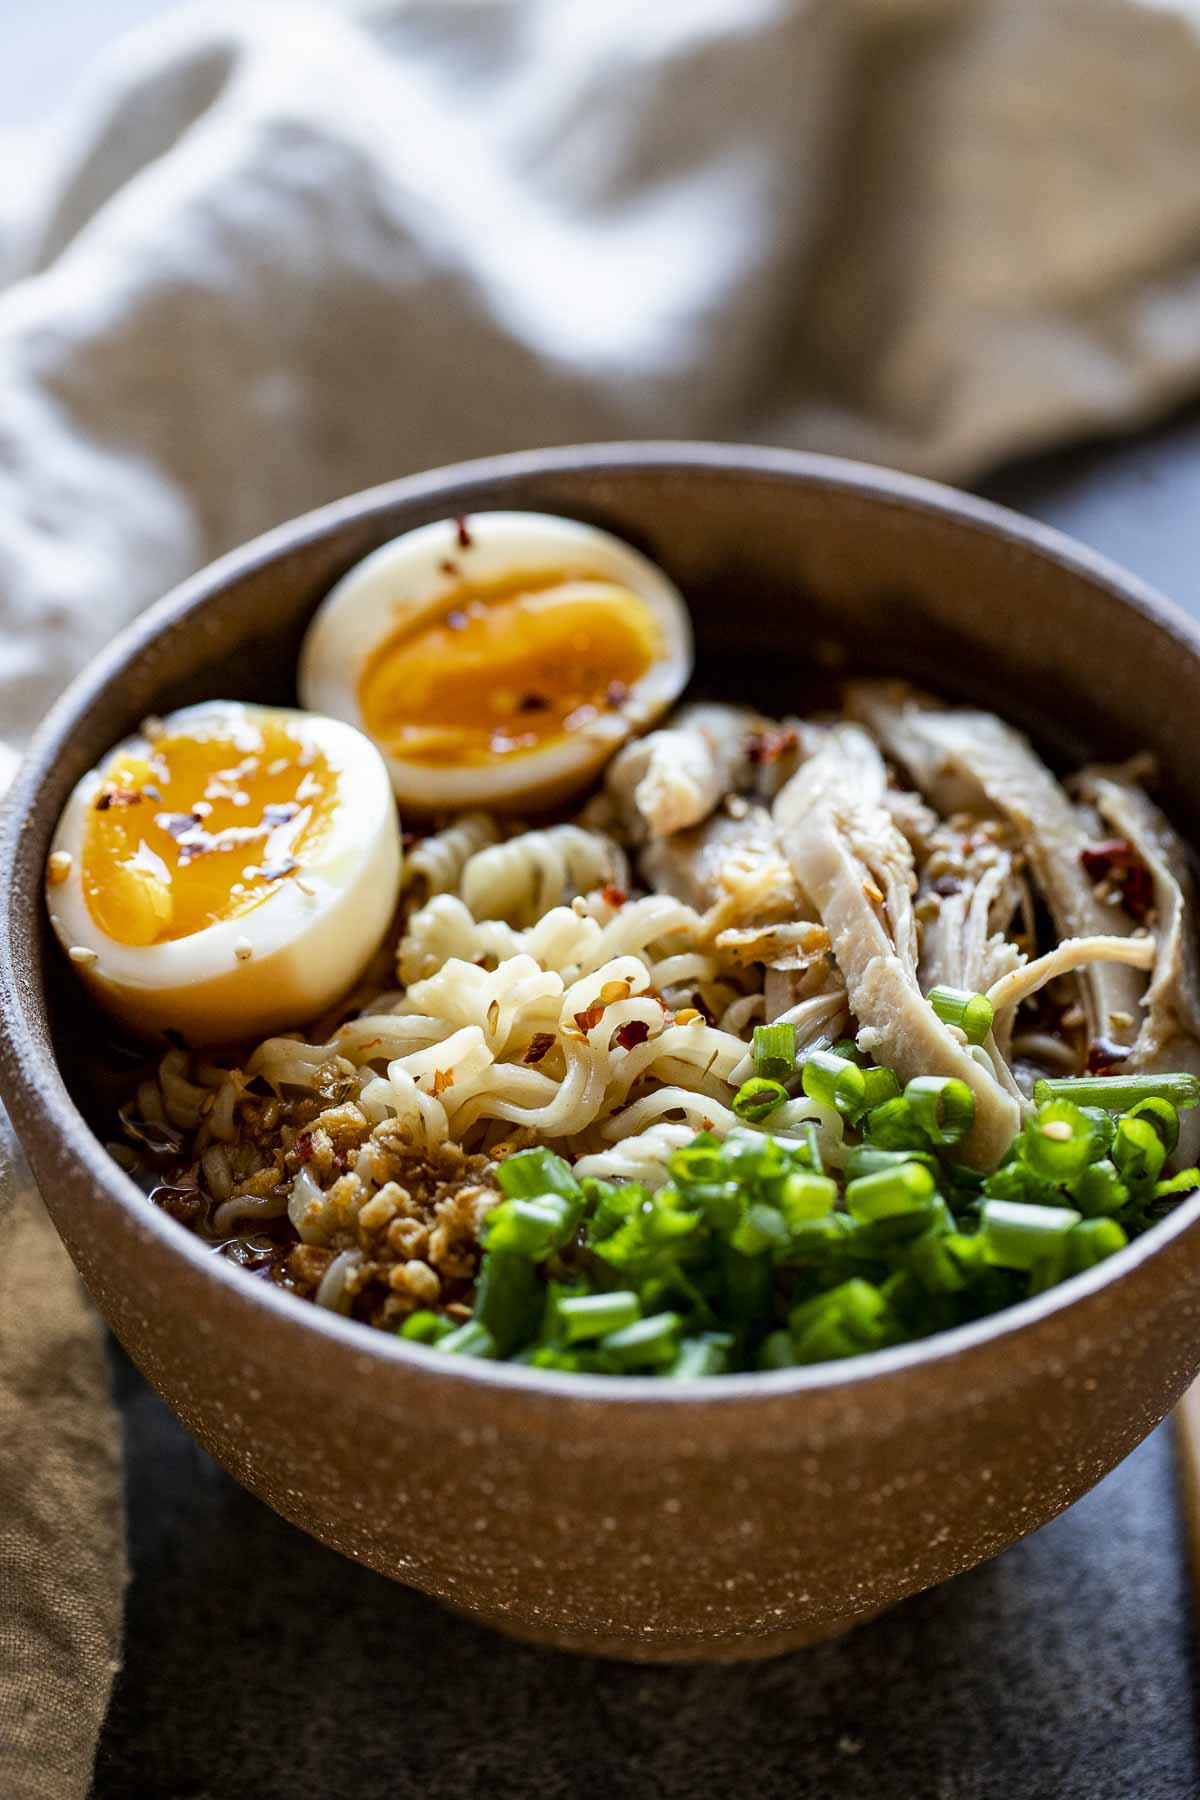 a bowl of noodles soup with an egg cut in half and green onion